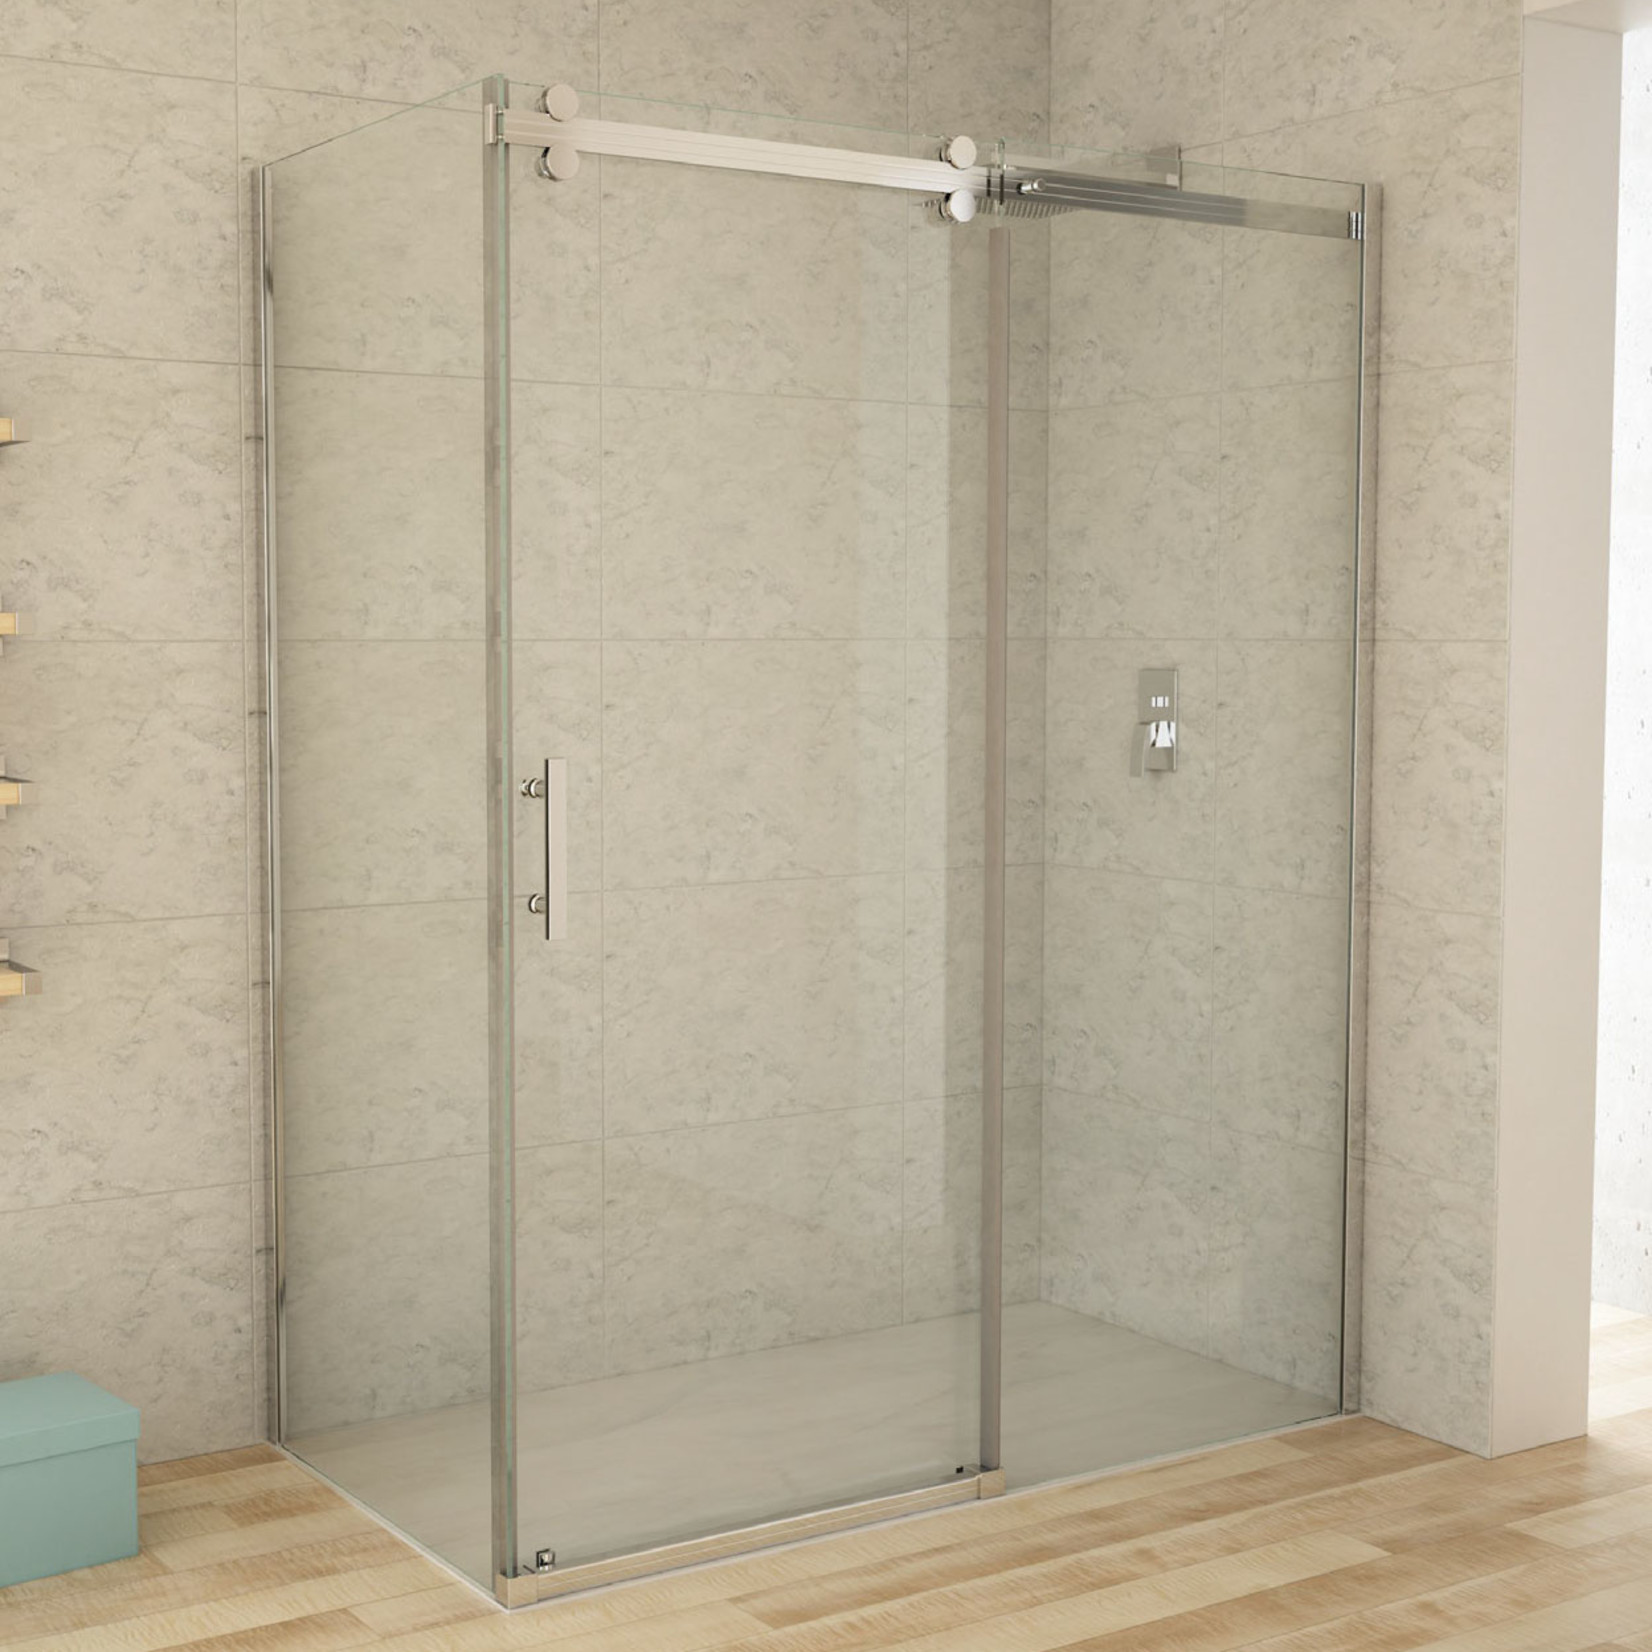 Ensemble de douche réversible 32x60 chrome CDC